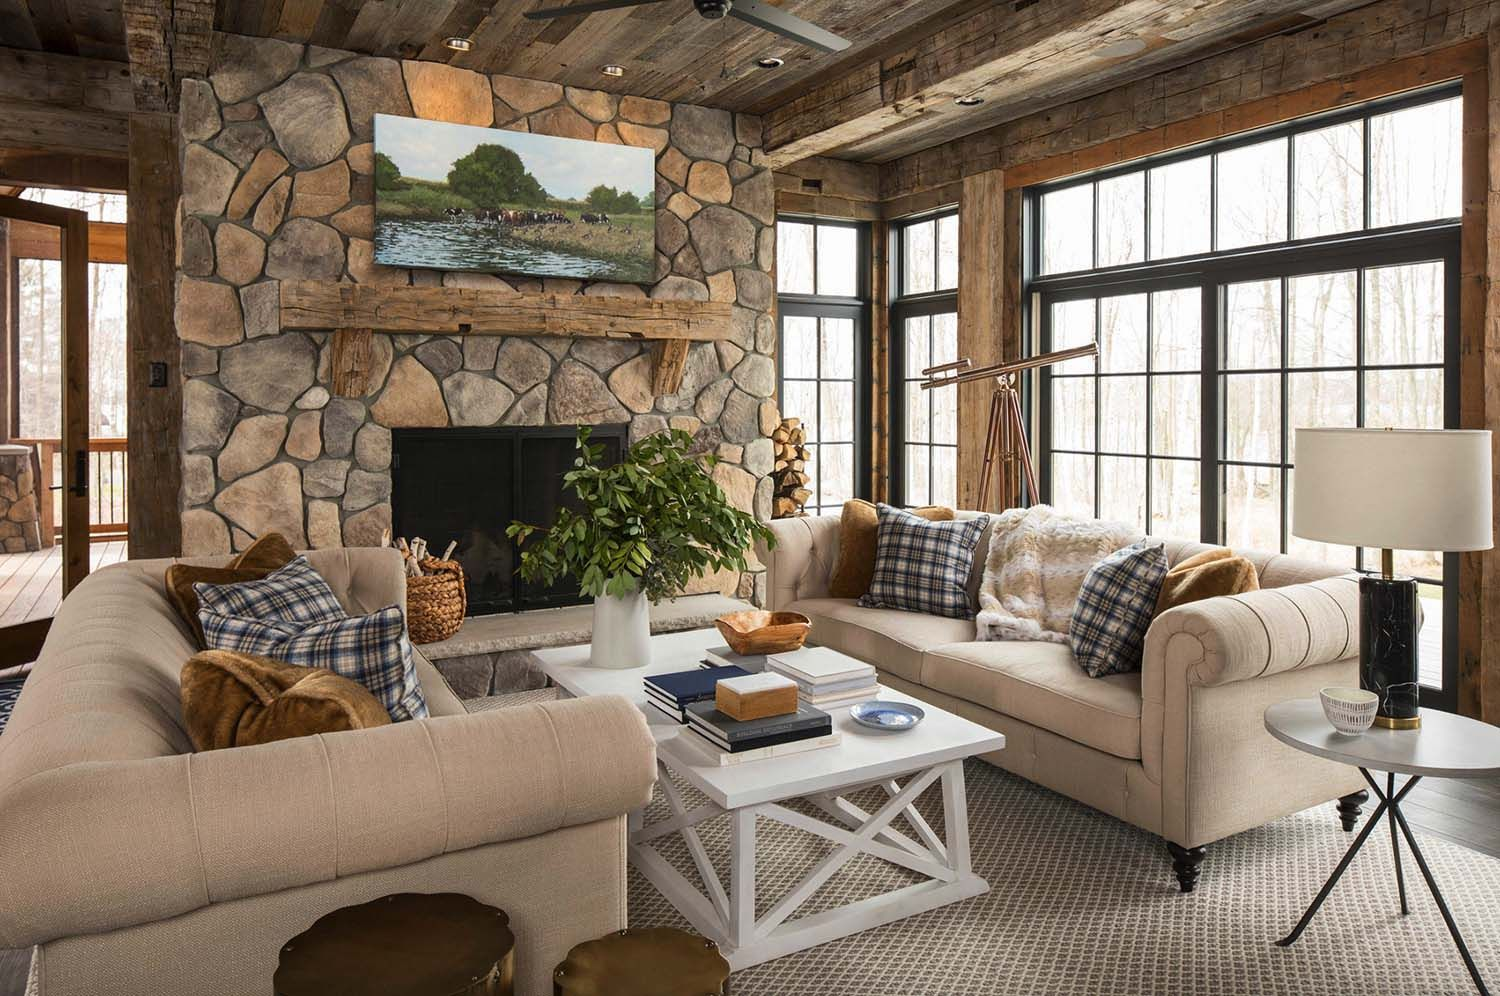 Rustic Lakeside Retreat In Wisconsin Features Inviting Design